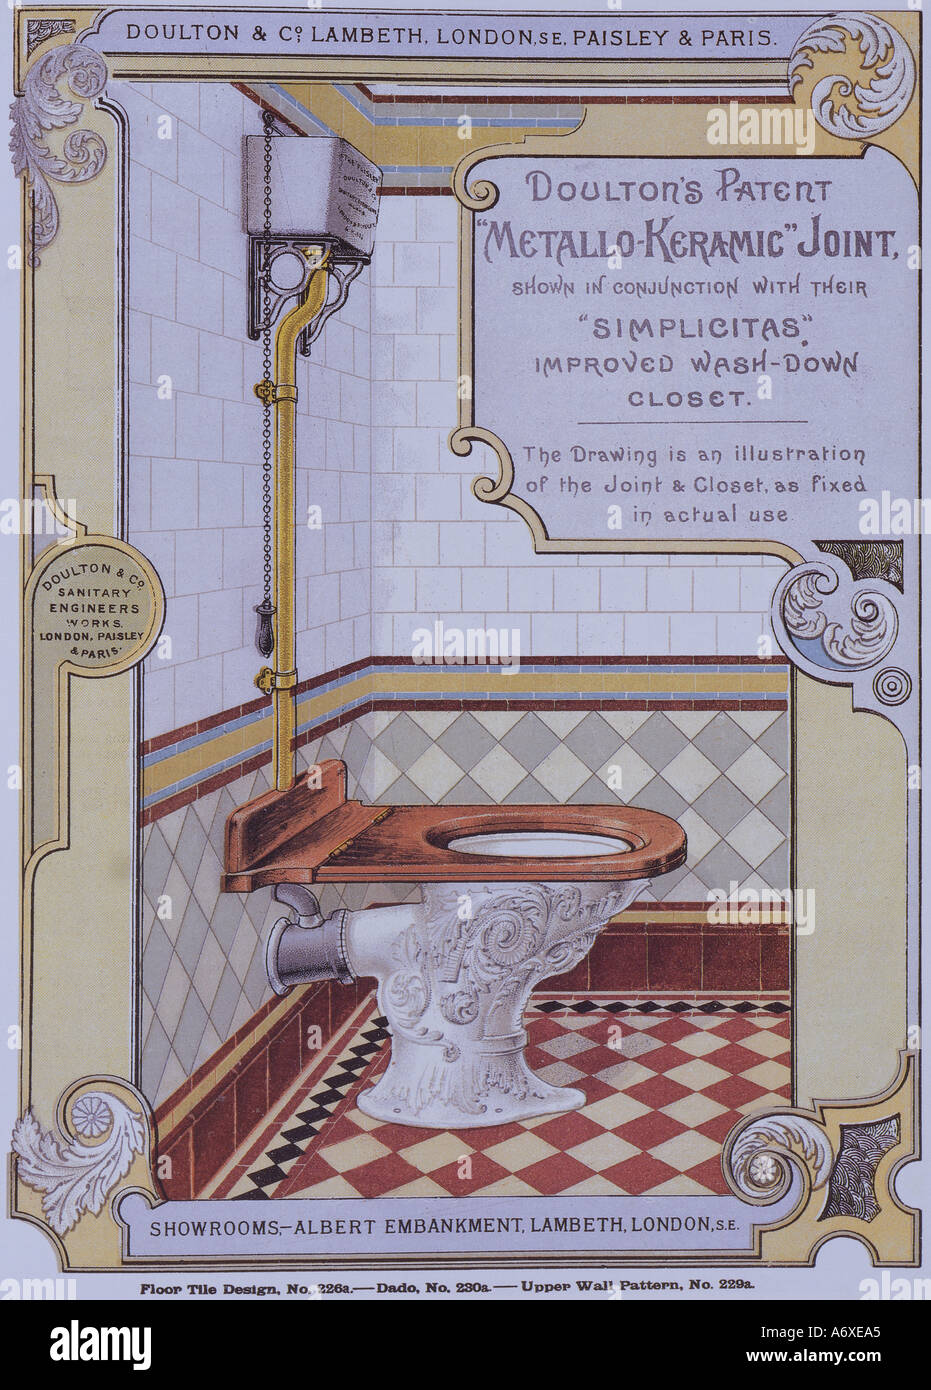 Victorian Bathroom Catalogue. London, England, late 19th century. - Stock Image